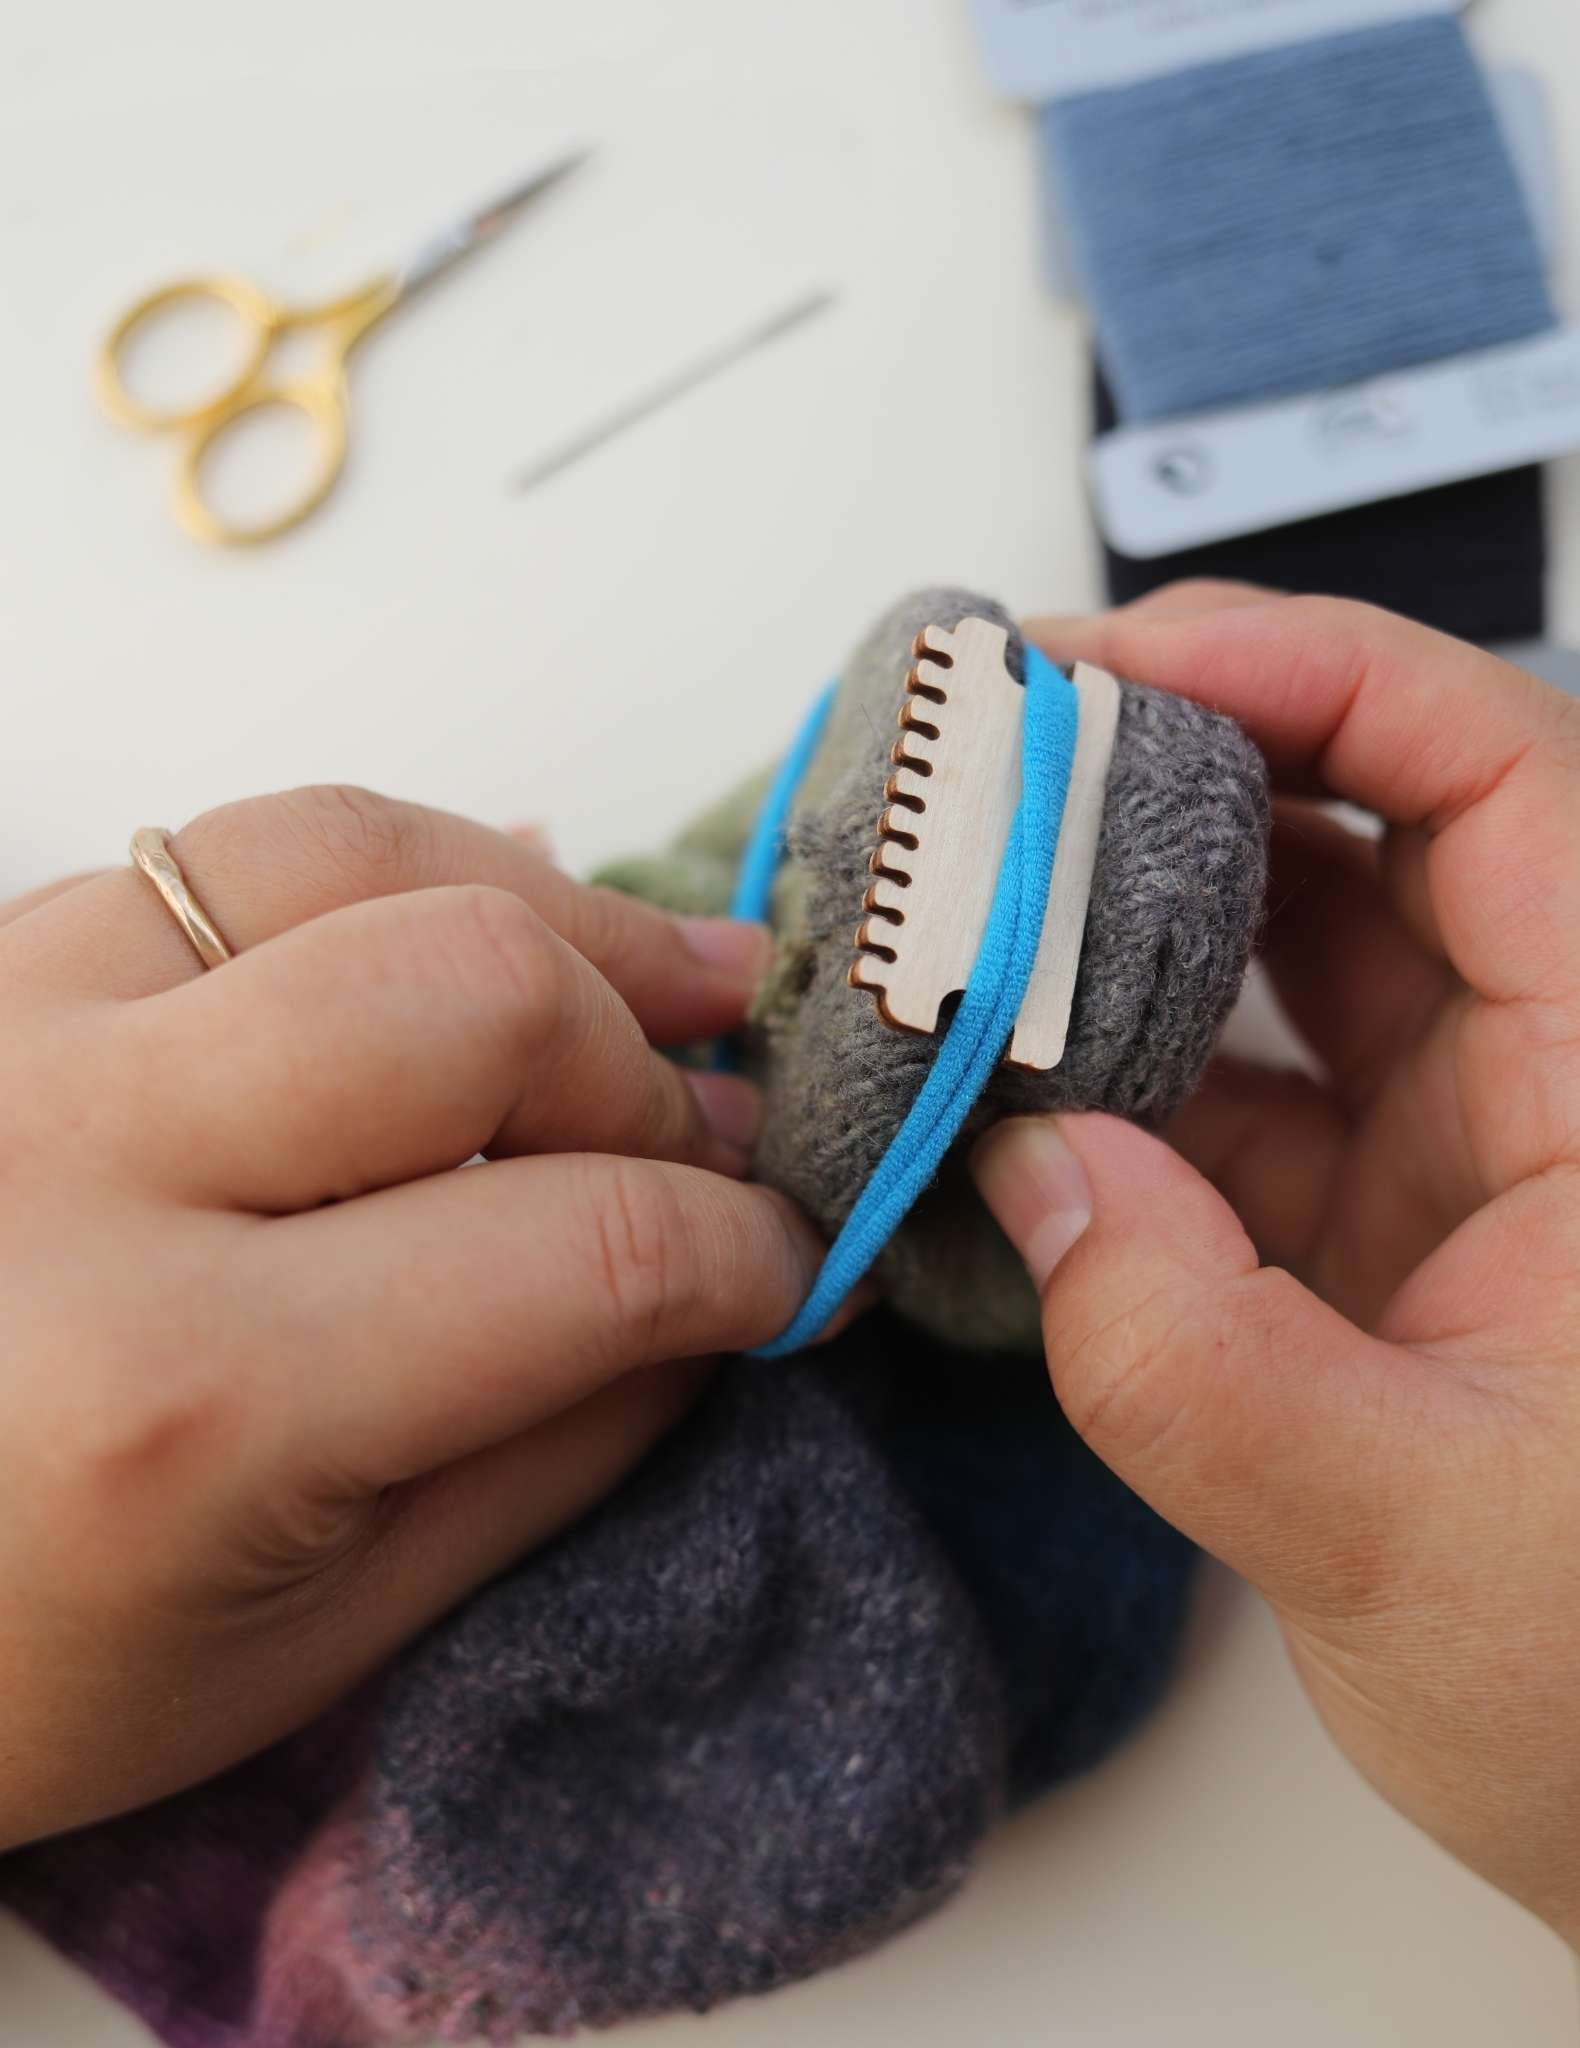 Hands are stretching a blue piece of elastic around a heddle and darning loom positioned inside the sock, securing them both together.